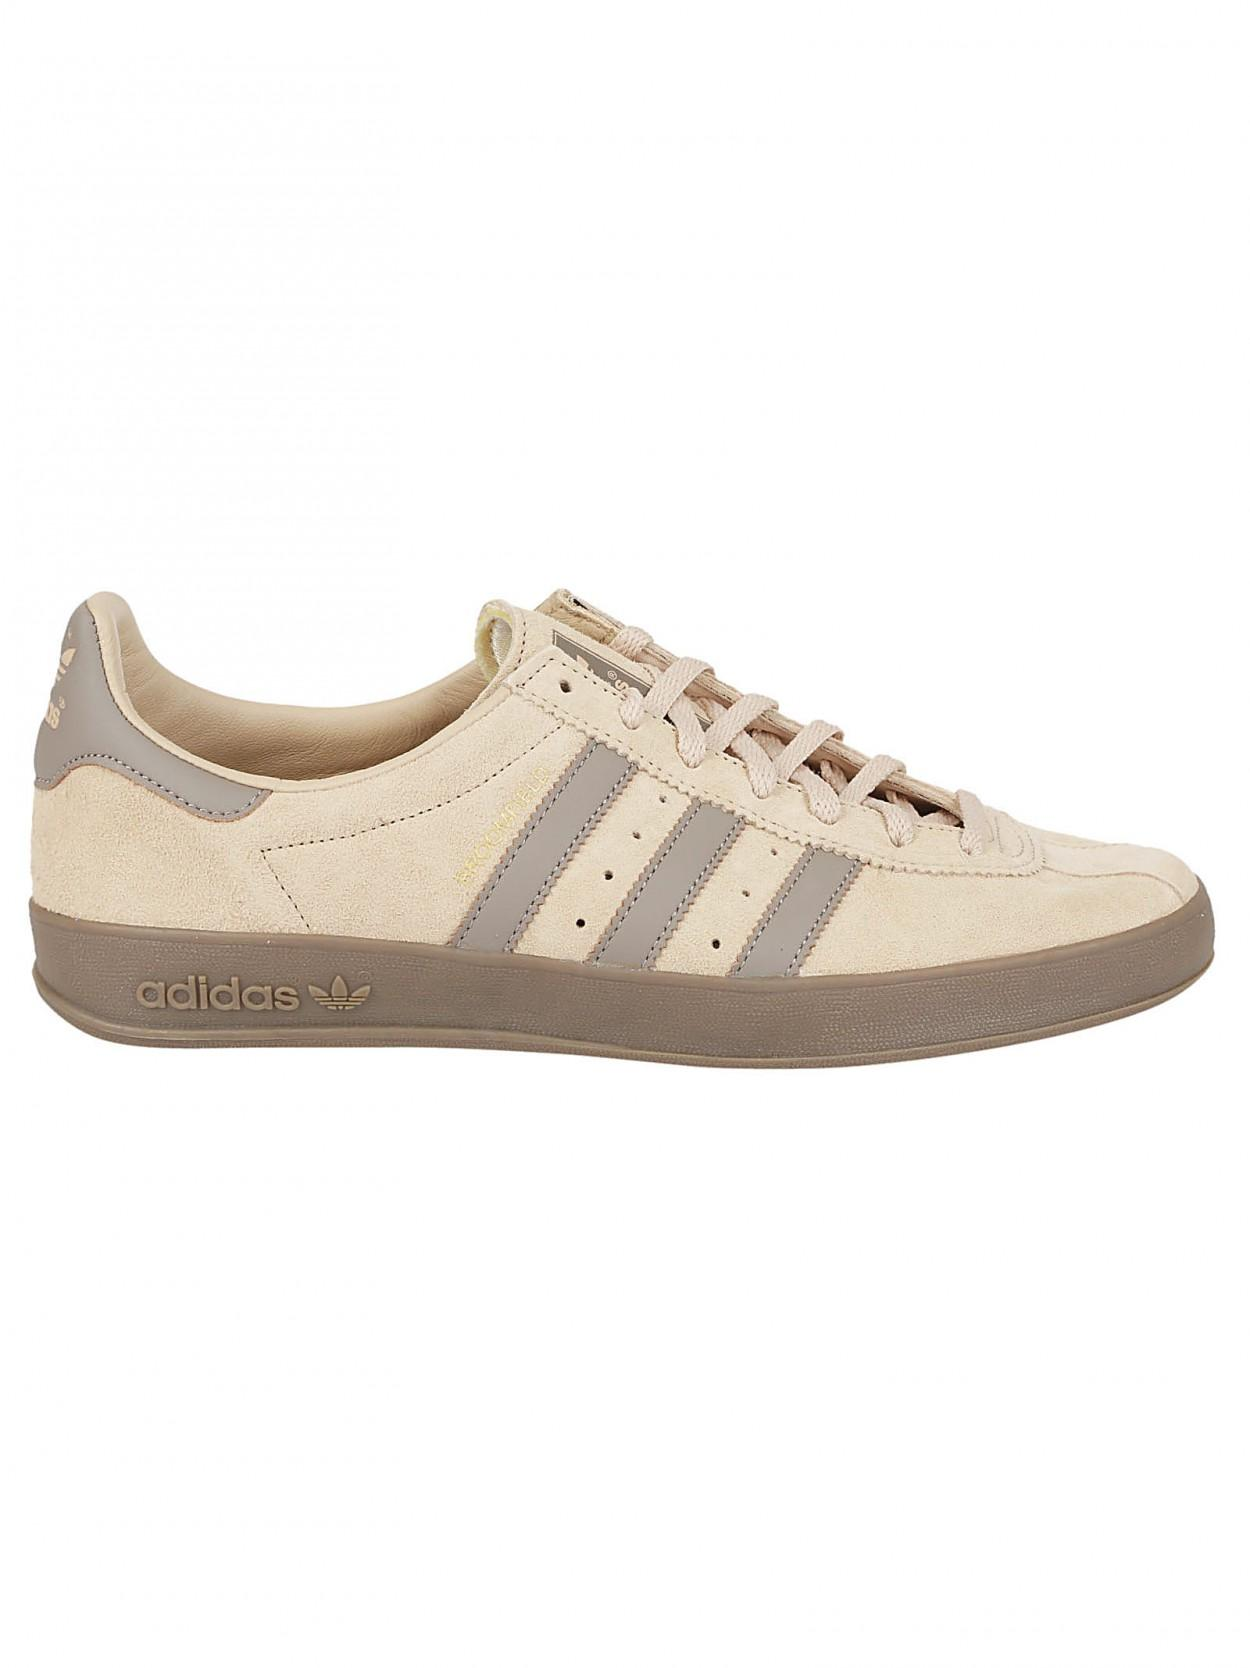 adidas Originals ADIDAS ORIGINALS Sneaker broomfield beige in Brown ... a49a1736d